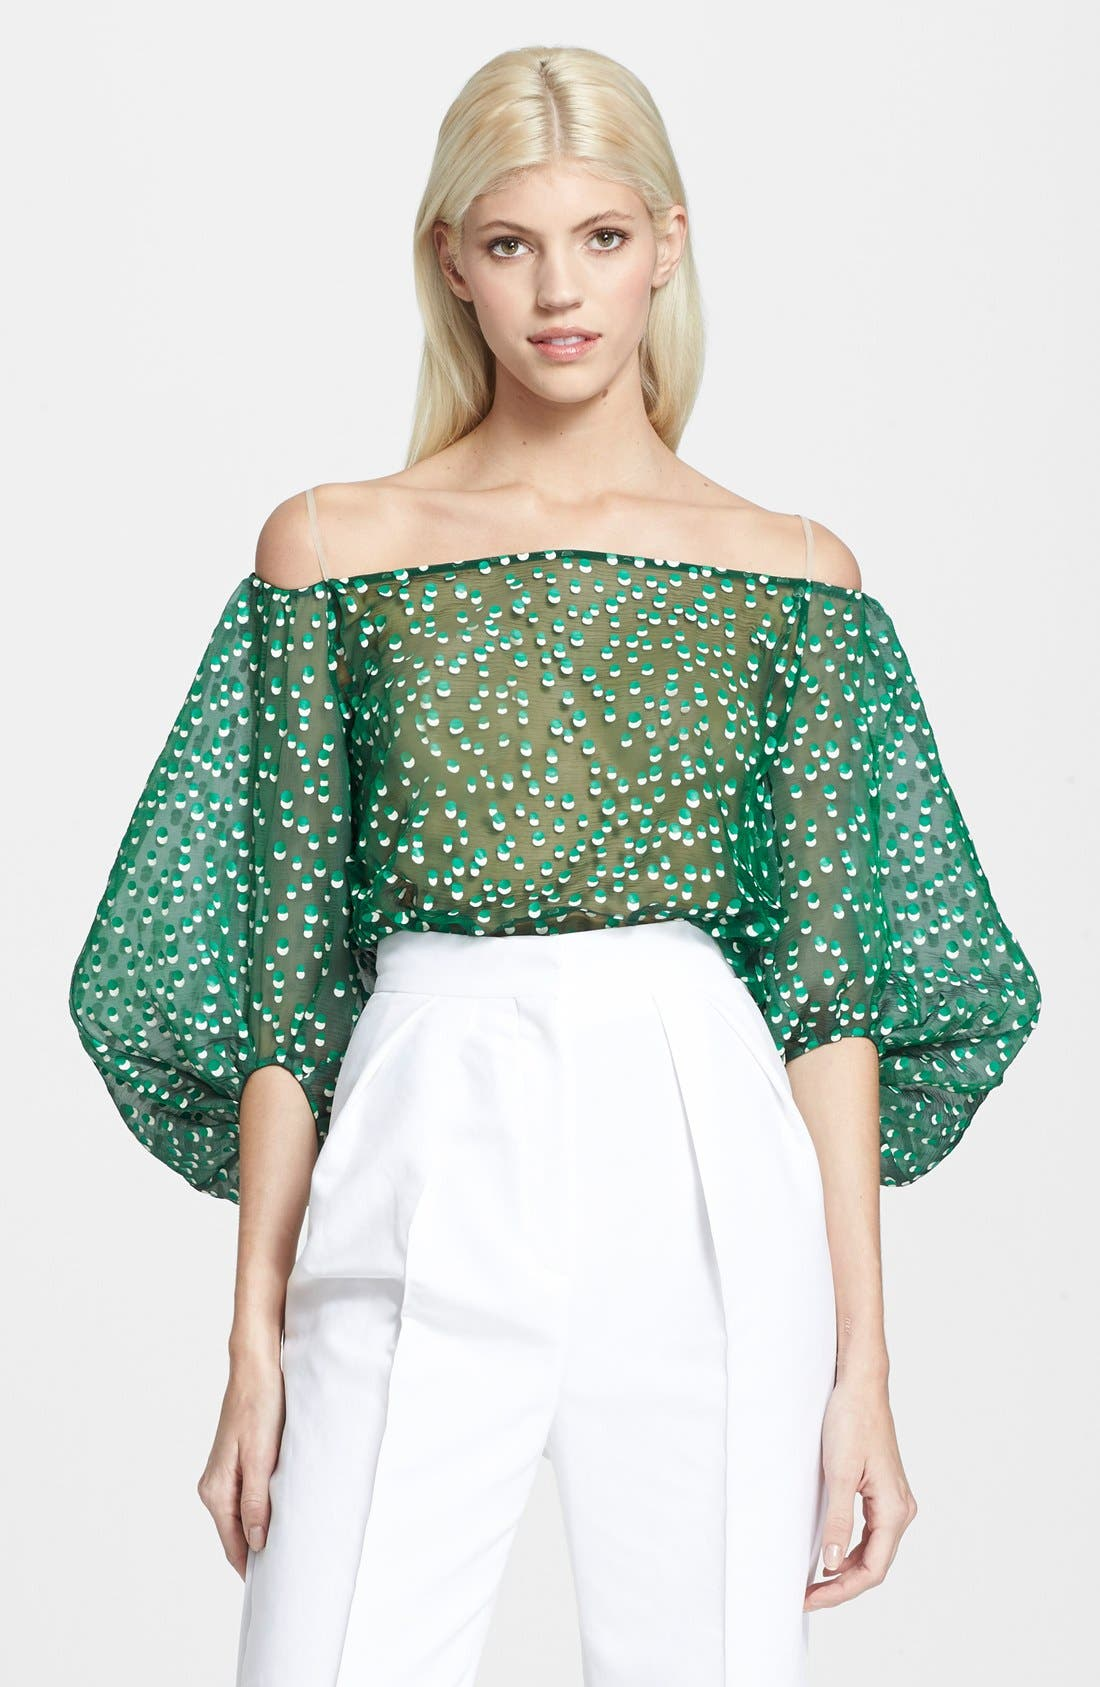 Main Image - Vika Gazinskaya Polka Dot Off the Shoulder Décolletage Blouse